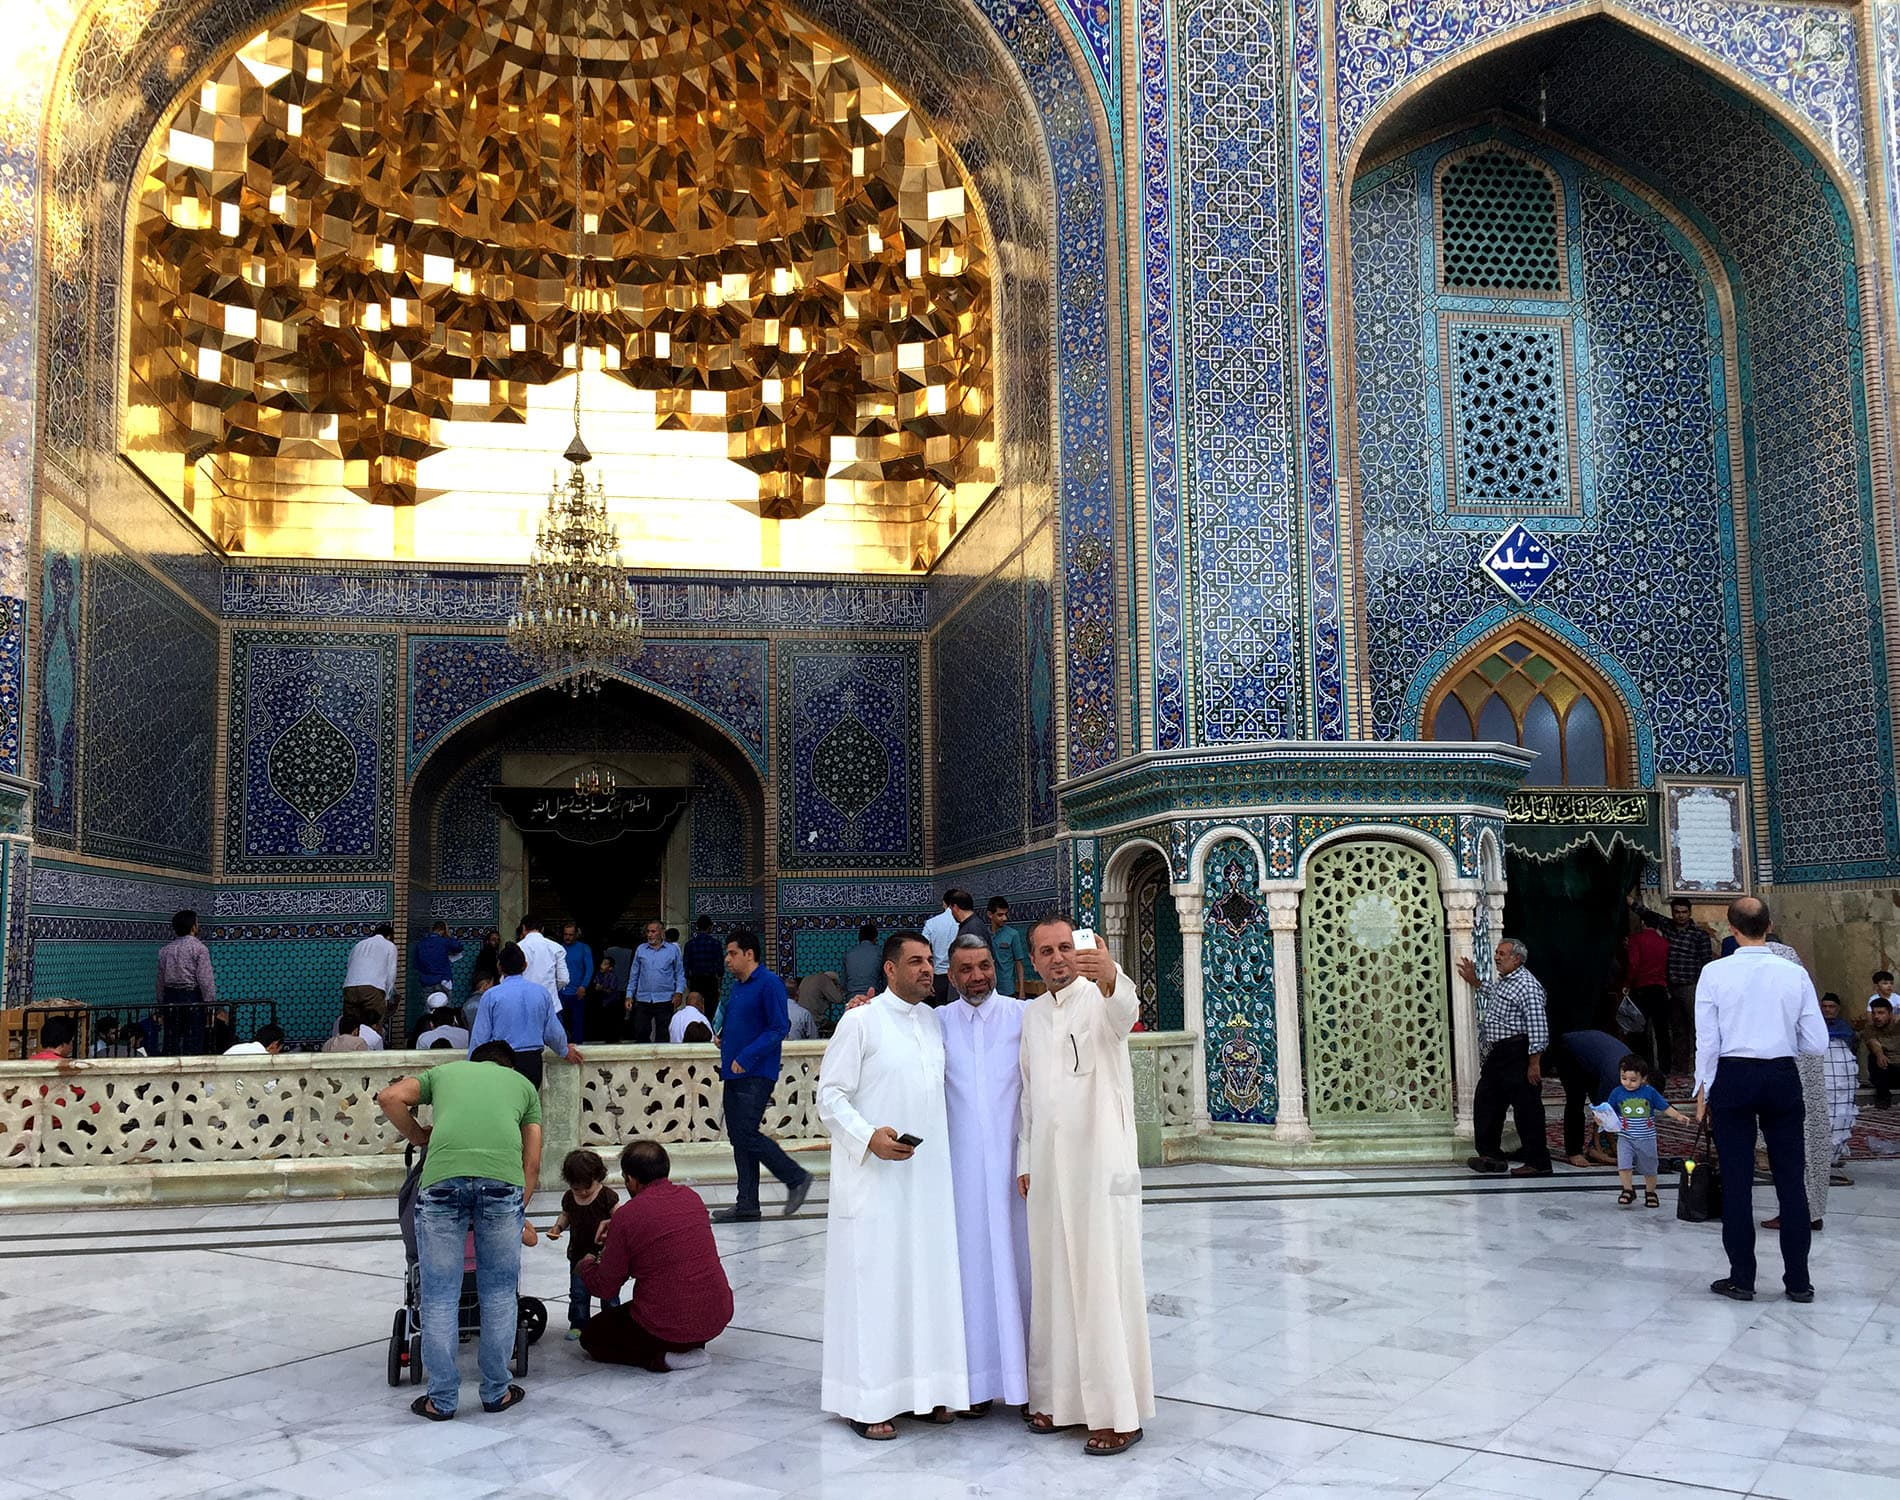 Iraqi pilgrims take a selfie at the golden door to Fatima Masoumeh's shrine in Qom.